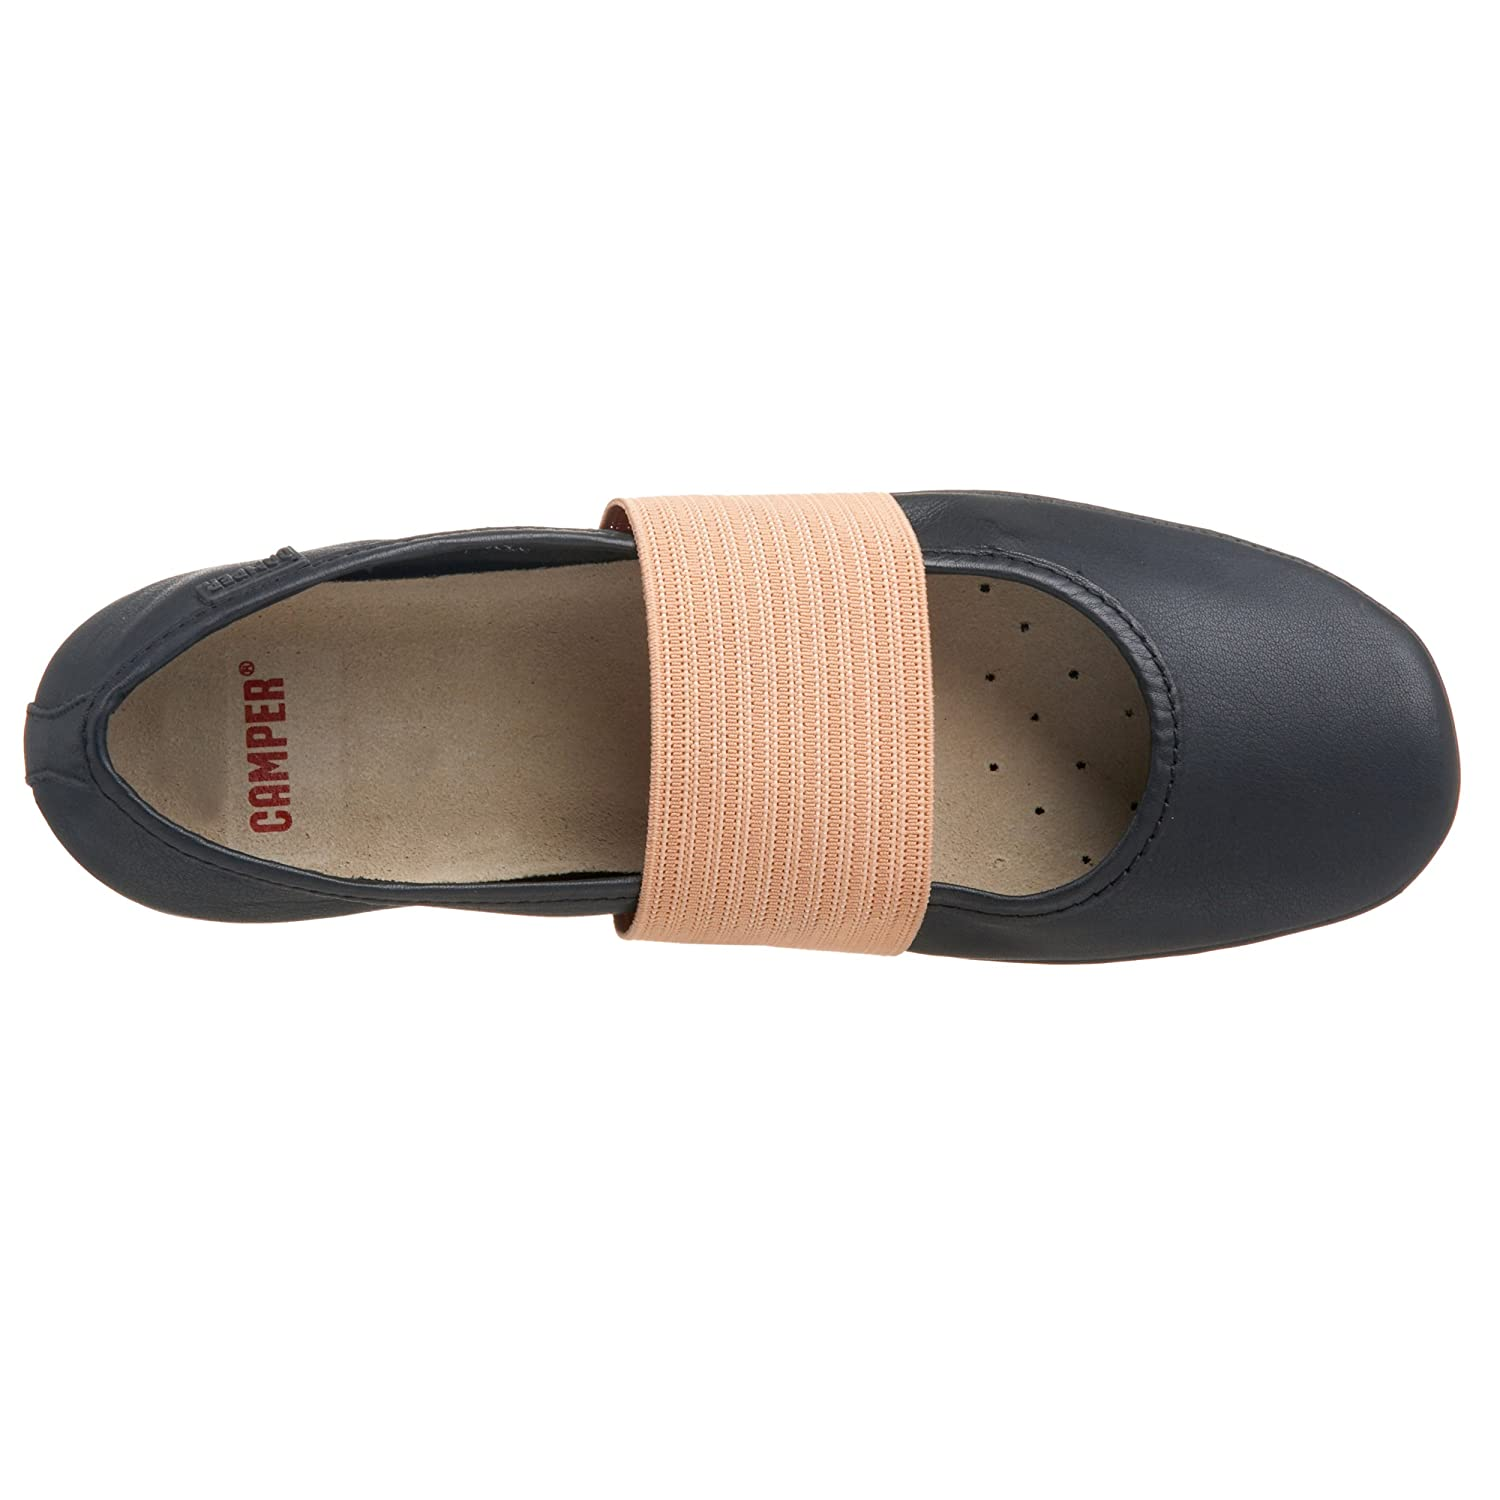 Camper Right Ballet Flat - Free Overnight Shipping & Return Shipping: Endless.com :  split sole flats shoes elasticized